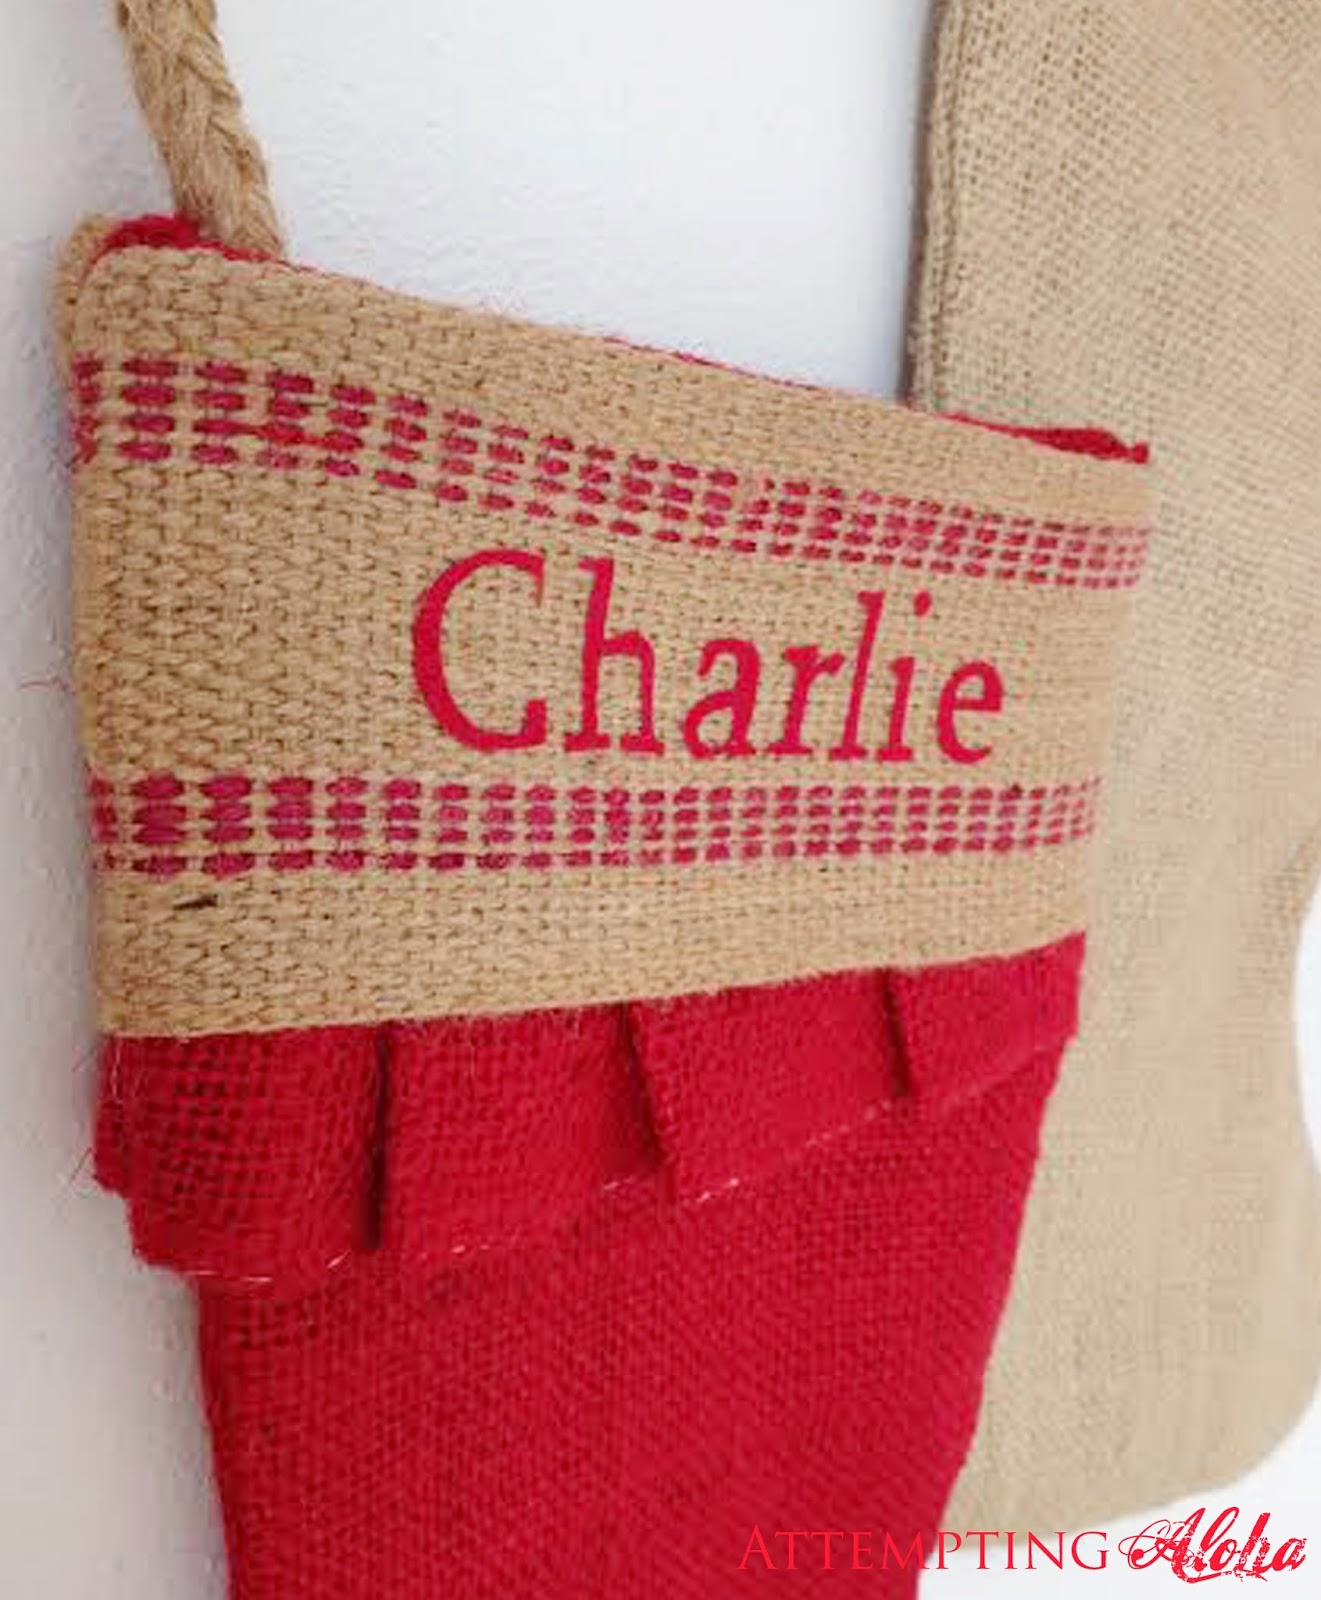 attempting aloha personalized burlap stockings i was able to fit all 6 family members and the dog on one 12x15 sheet of flock vinyl an excellent 5 25 investment if i might say